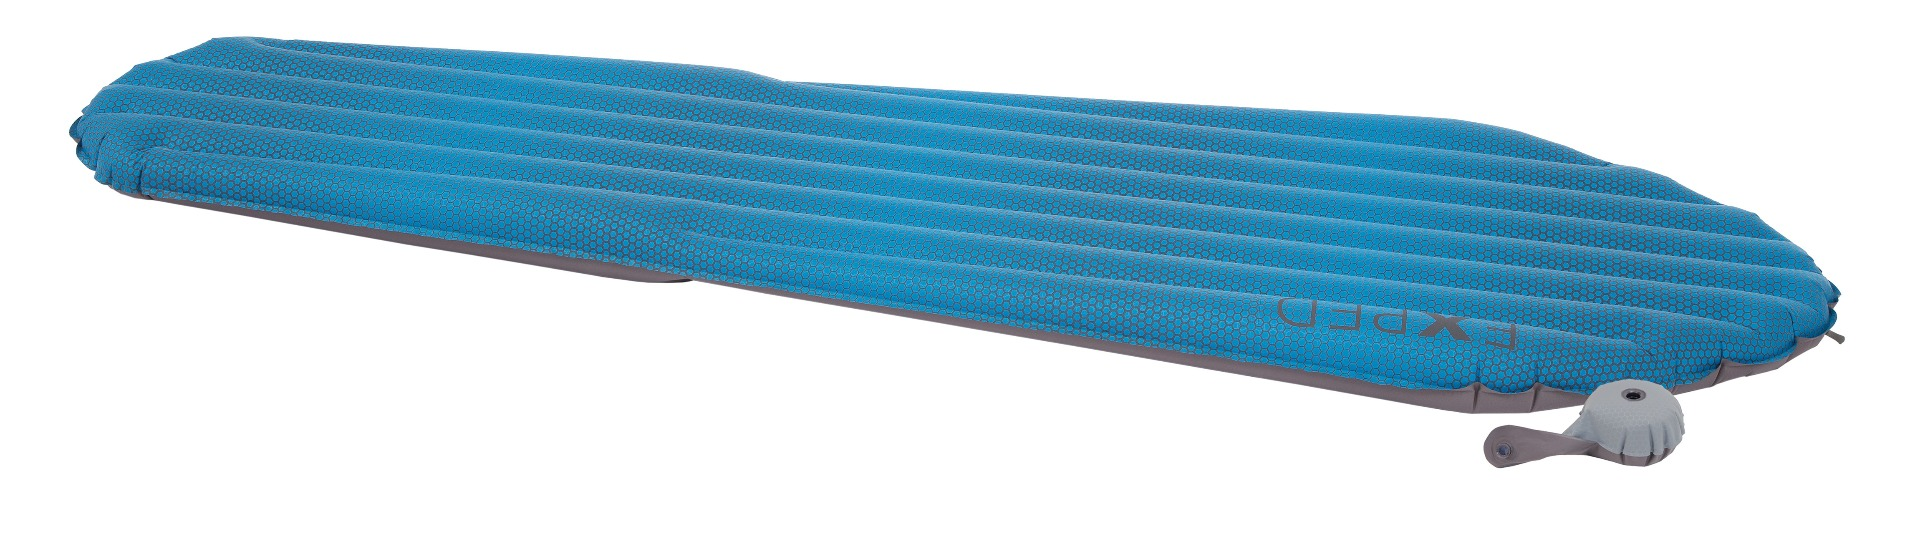 EXPED Exped AirMat HL M -